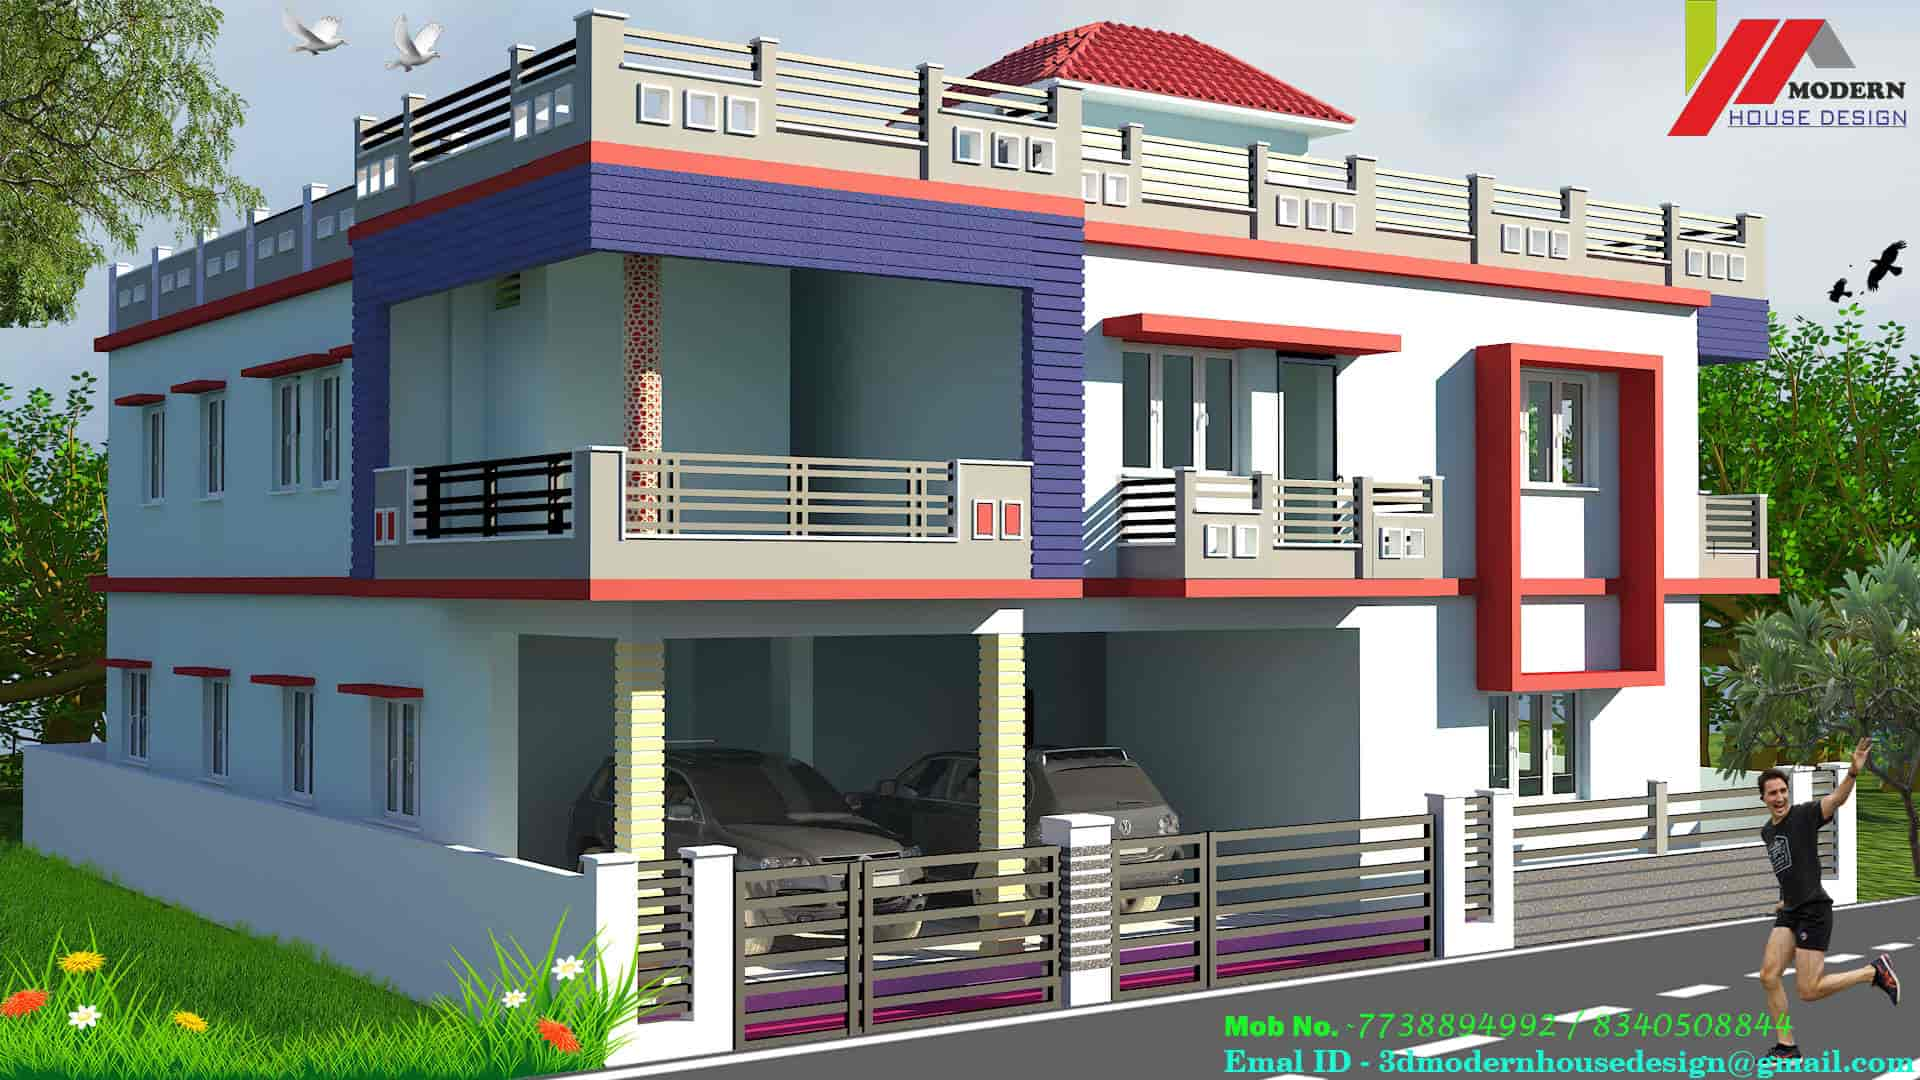 Modern House Design Durga Sthan Manddir Architects In